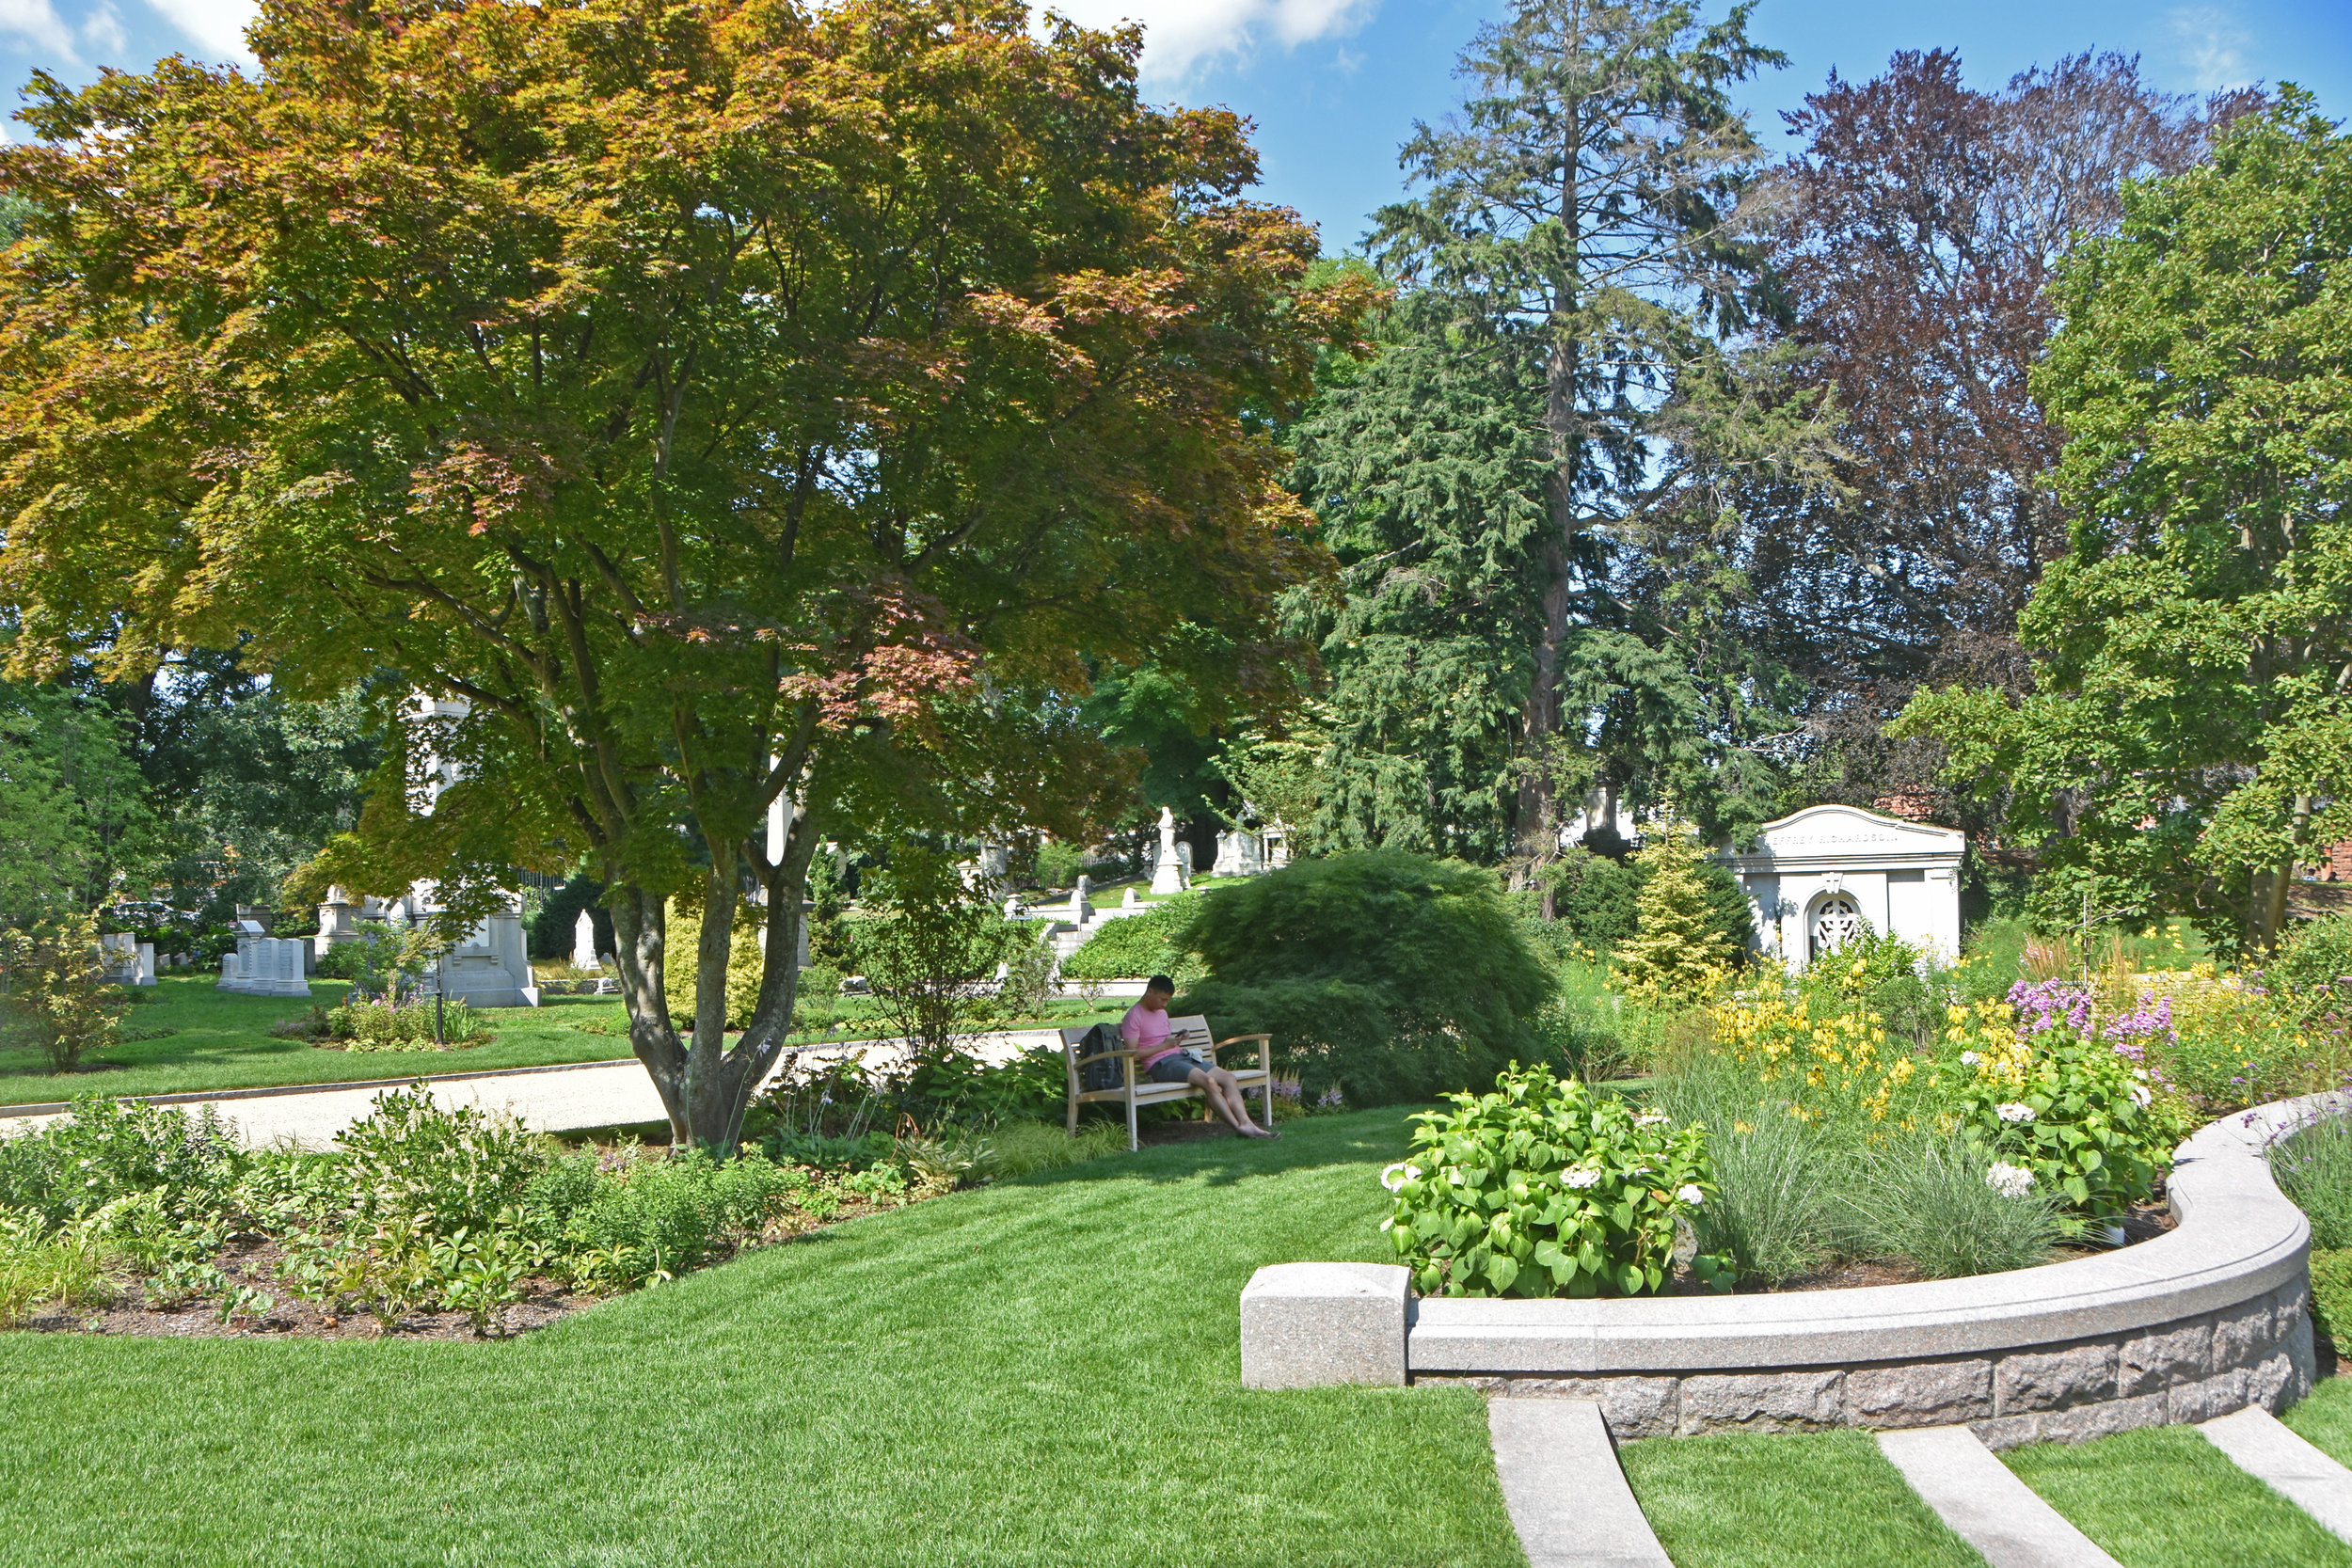 Shaded benches provide areas for people to sit and reflect. (photo by Jo Oltman)